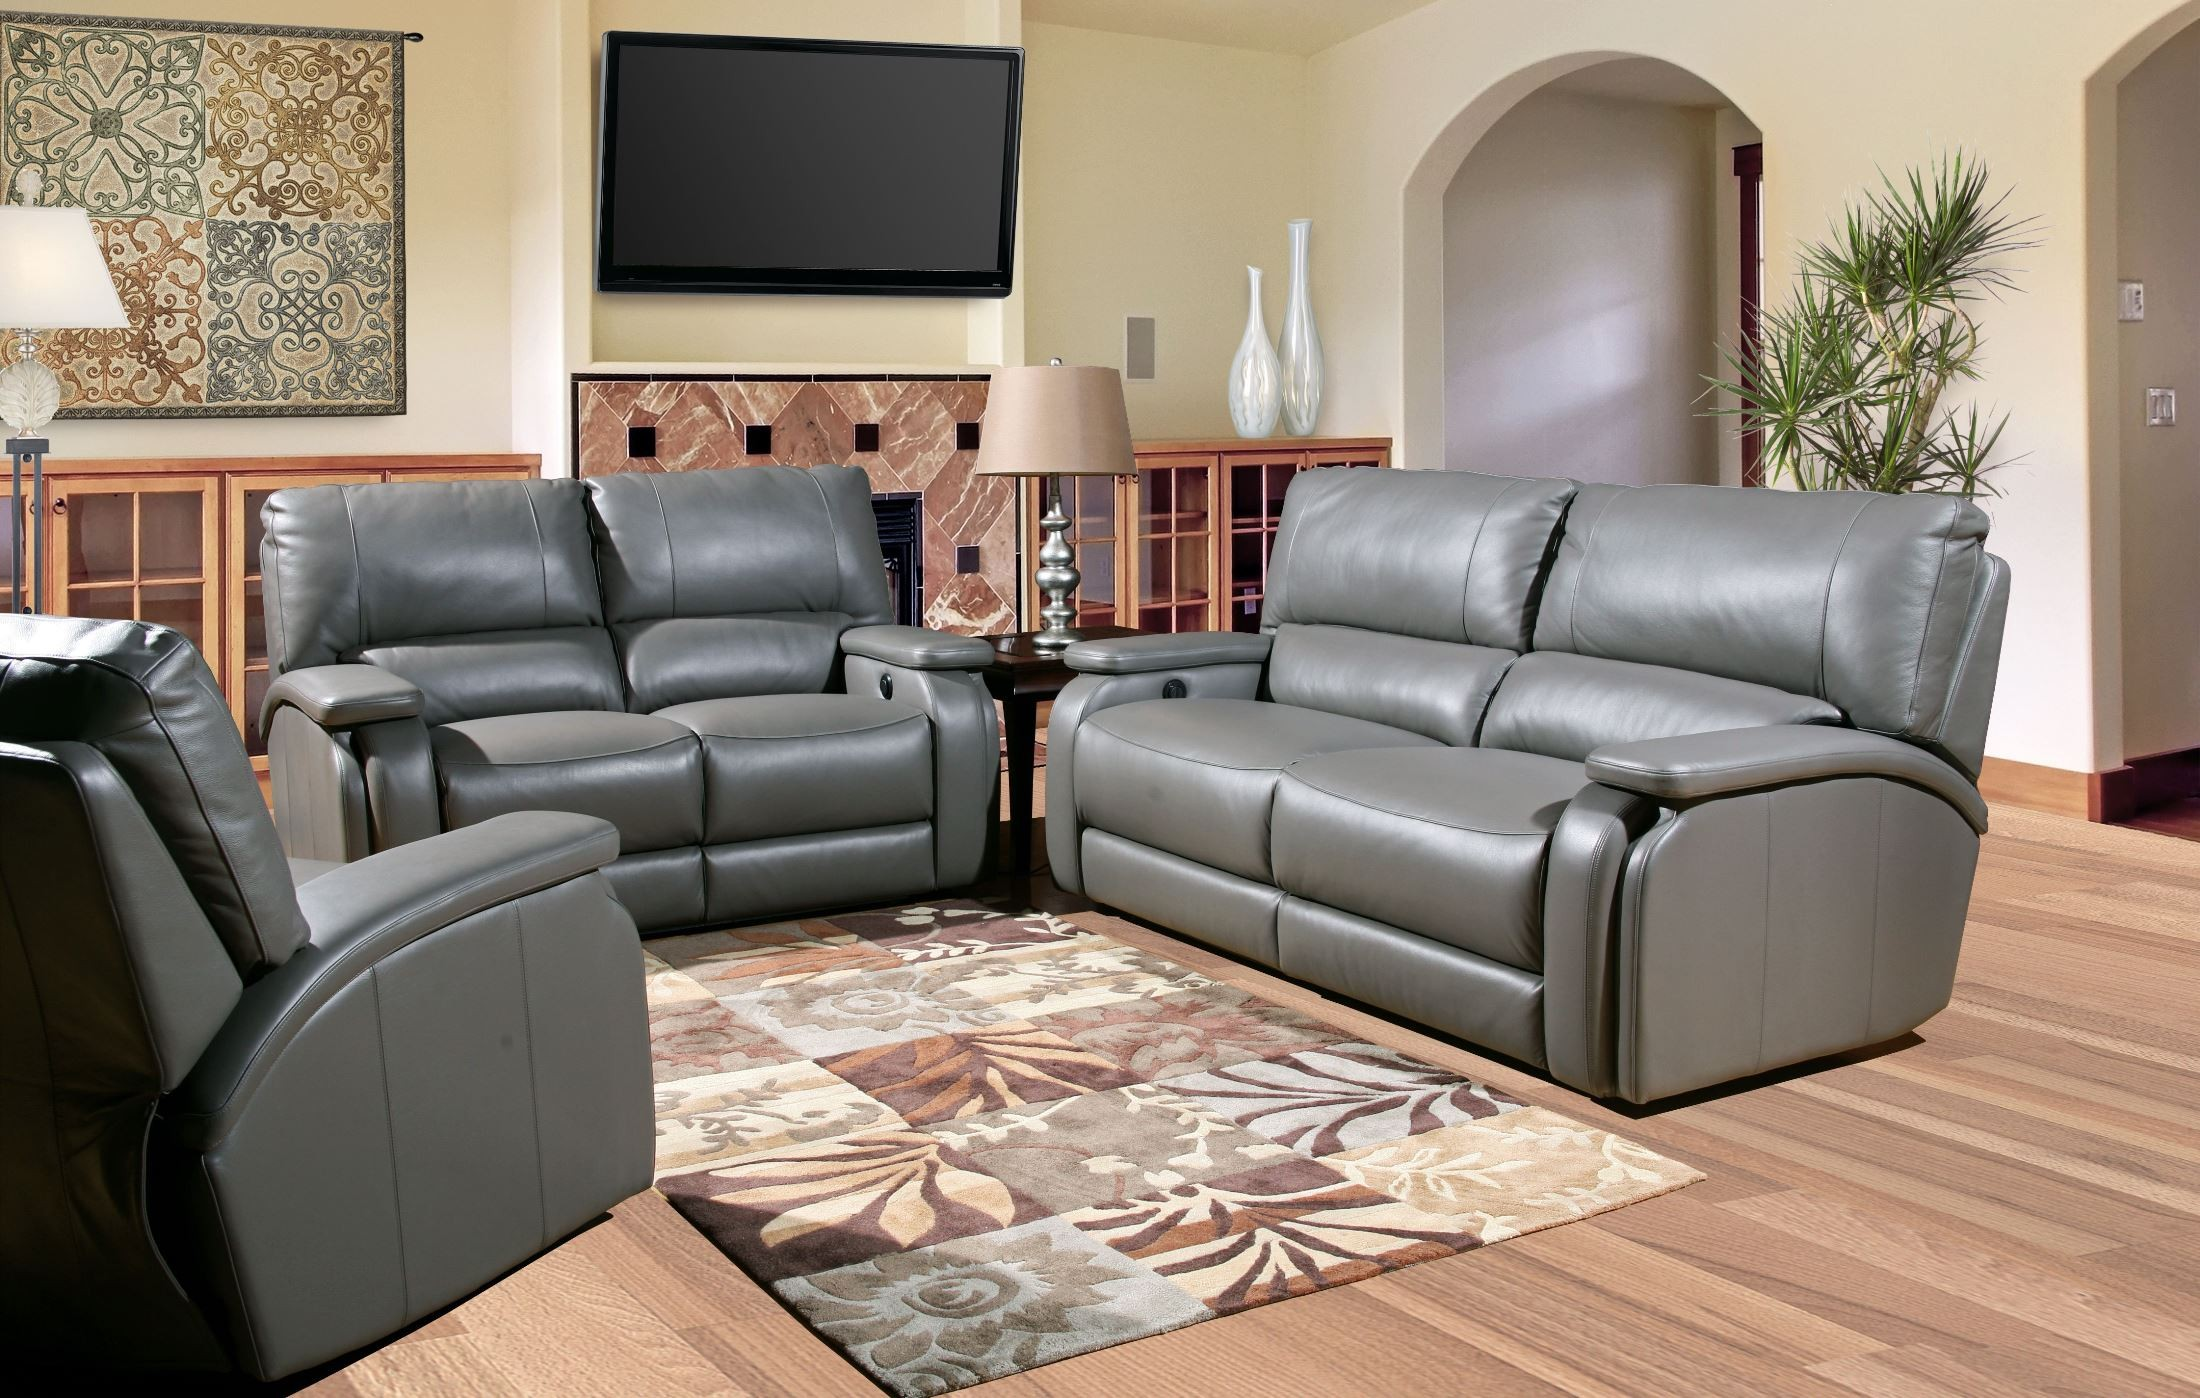 grisham heron dual power reclining living room set from parker living mgri 832p he coleman. Black Bedroom Furniture Sets. Home Design Ideas